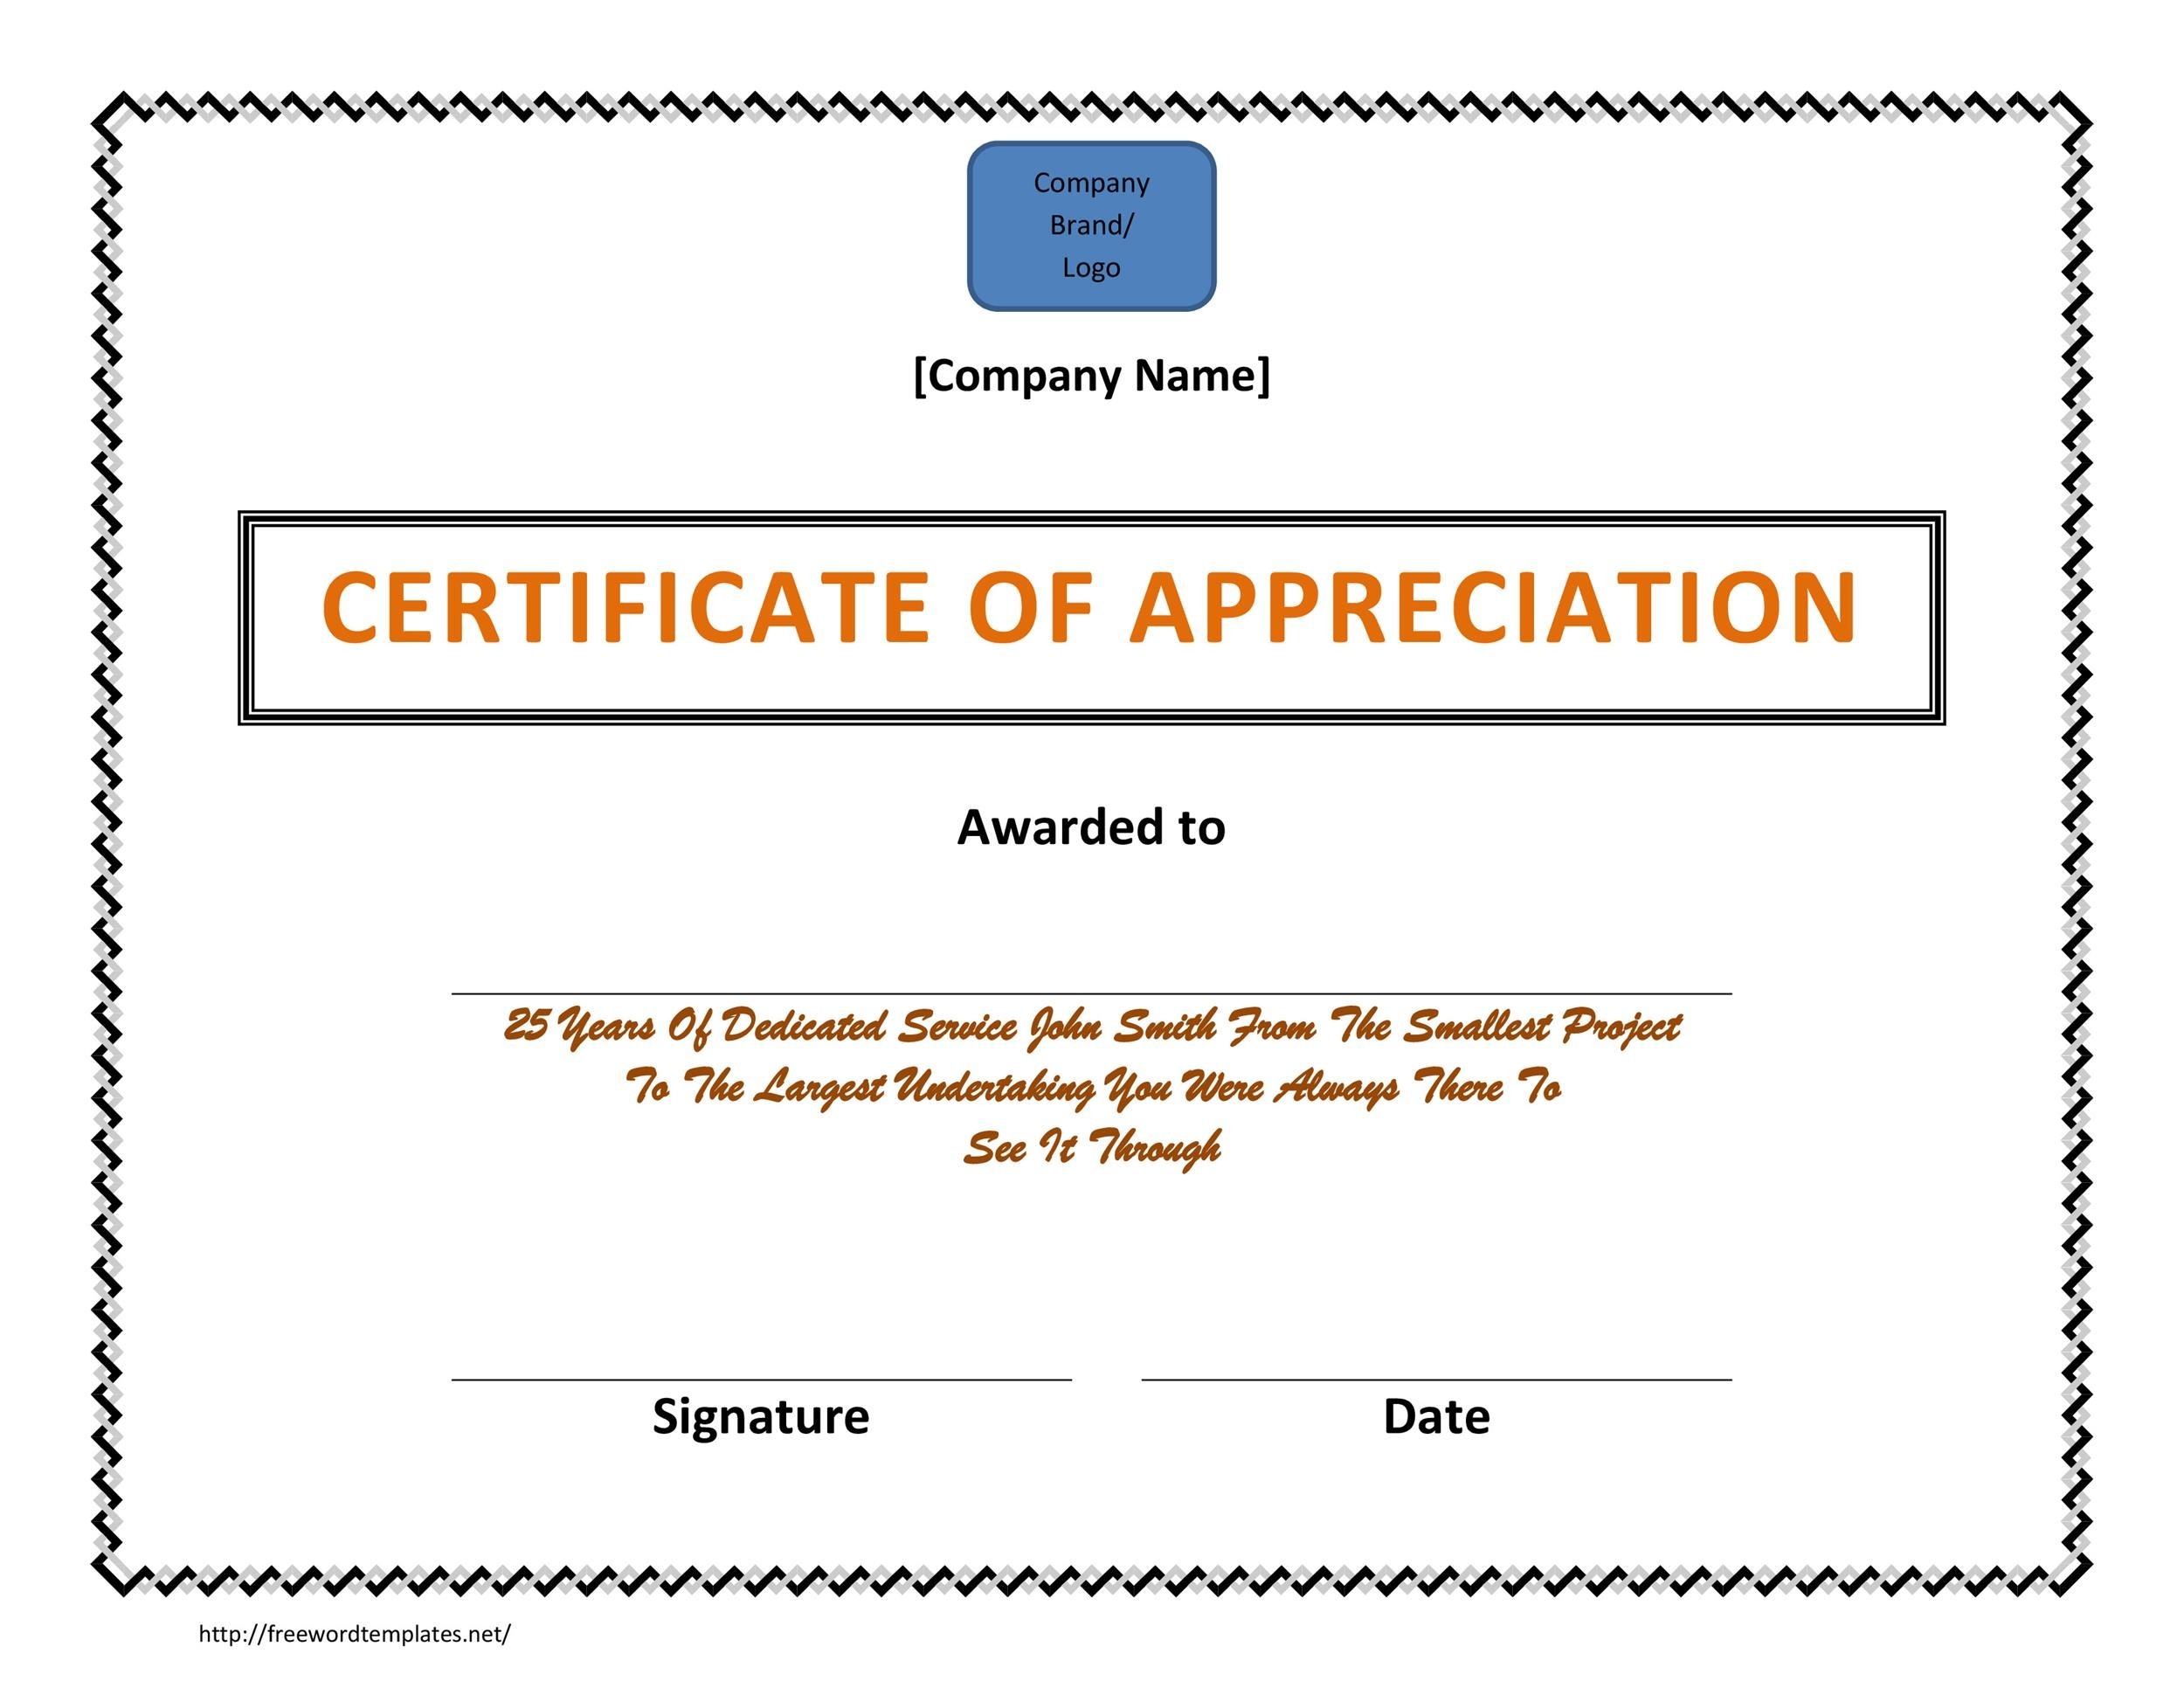 Free Certificate Of Appreciation 05 Printable Certificate Of Appreciation 05